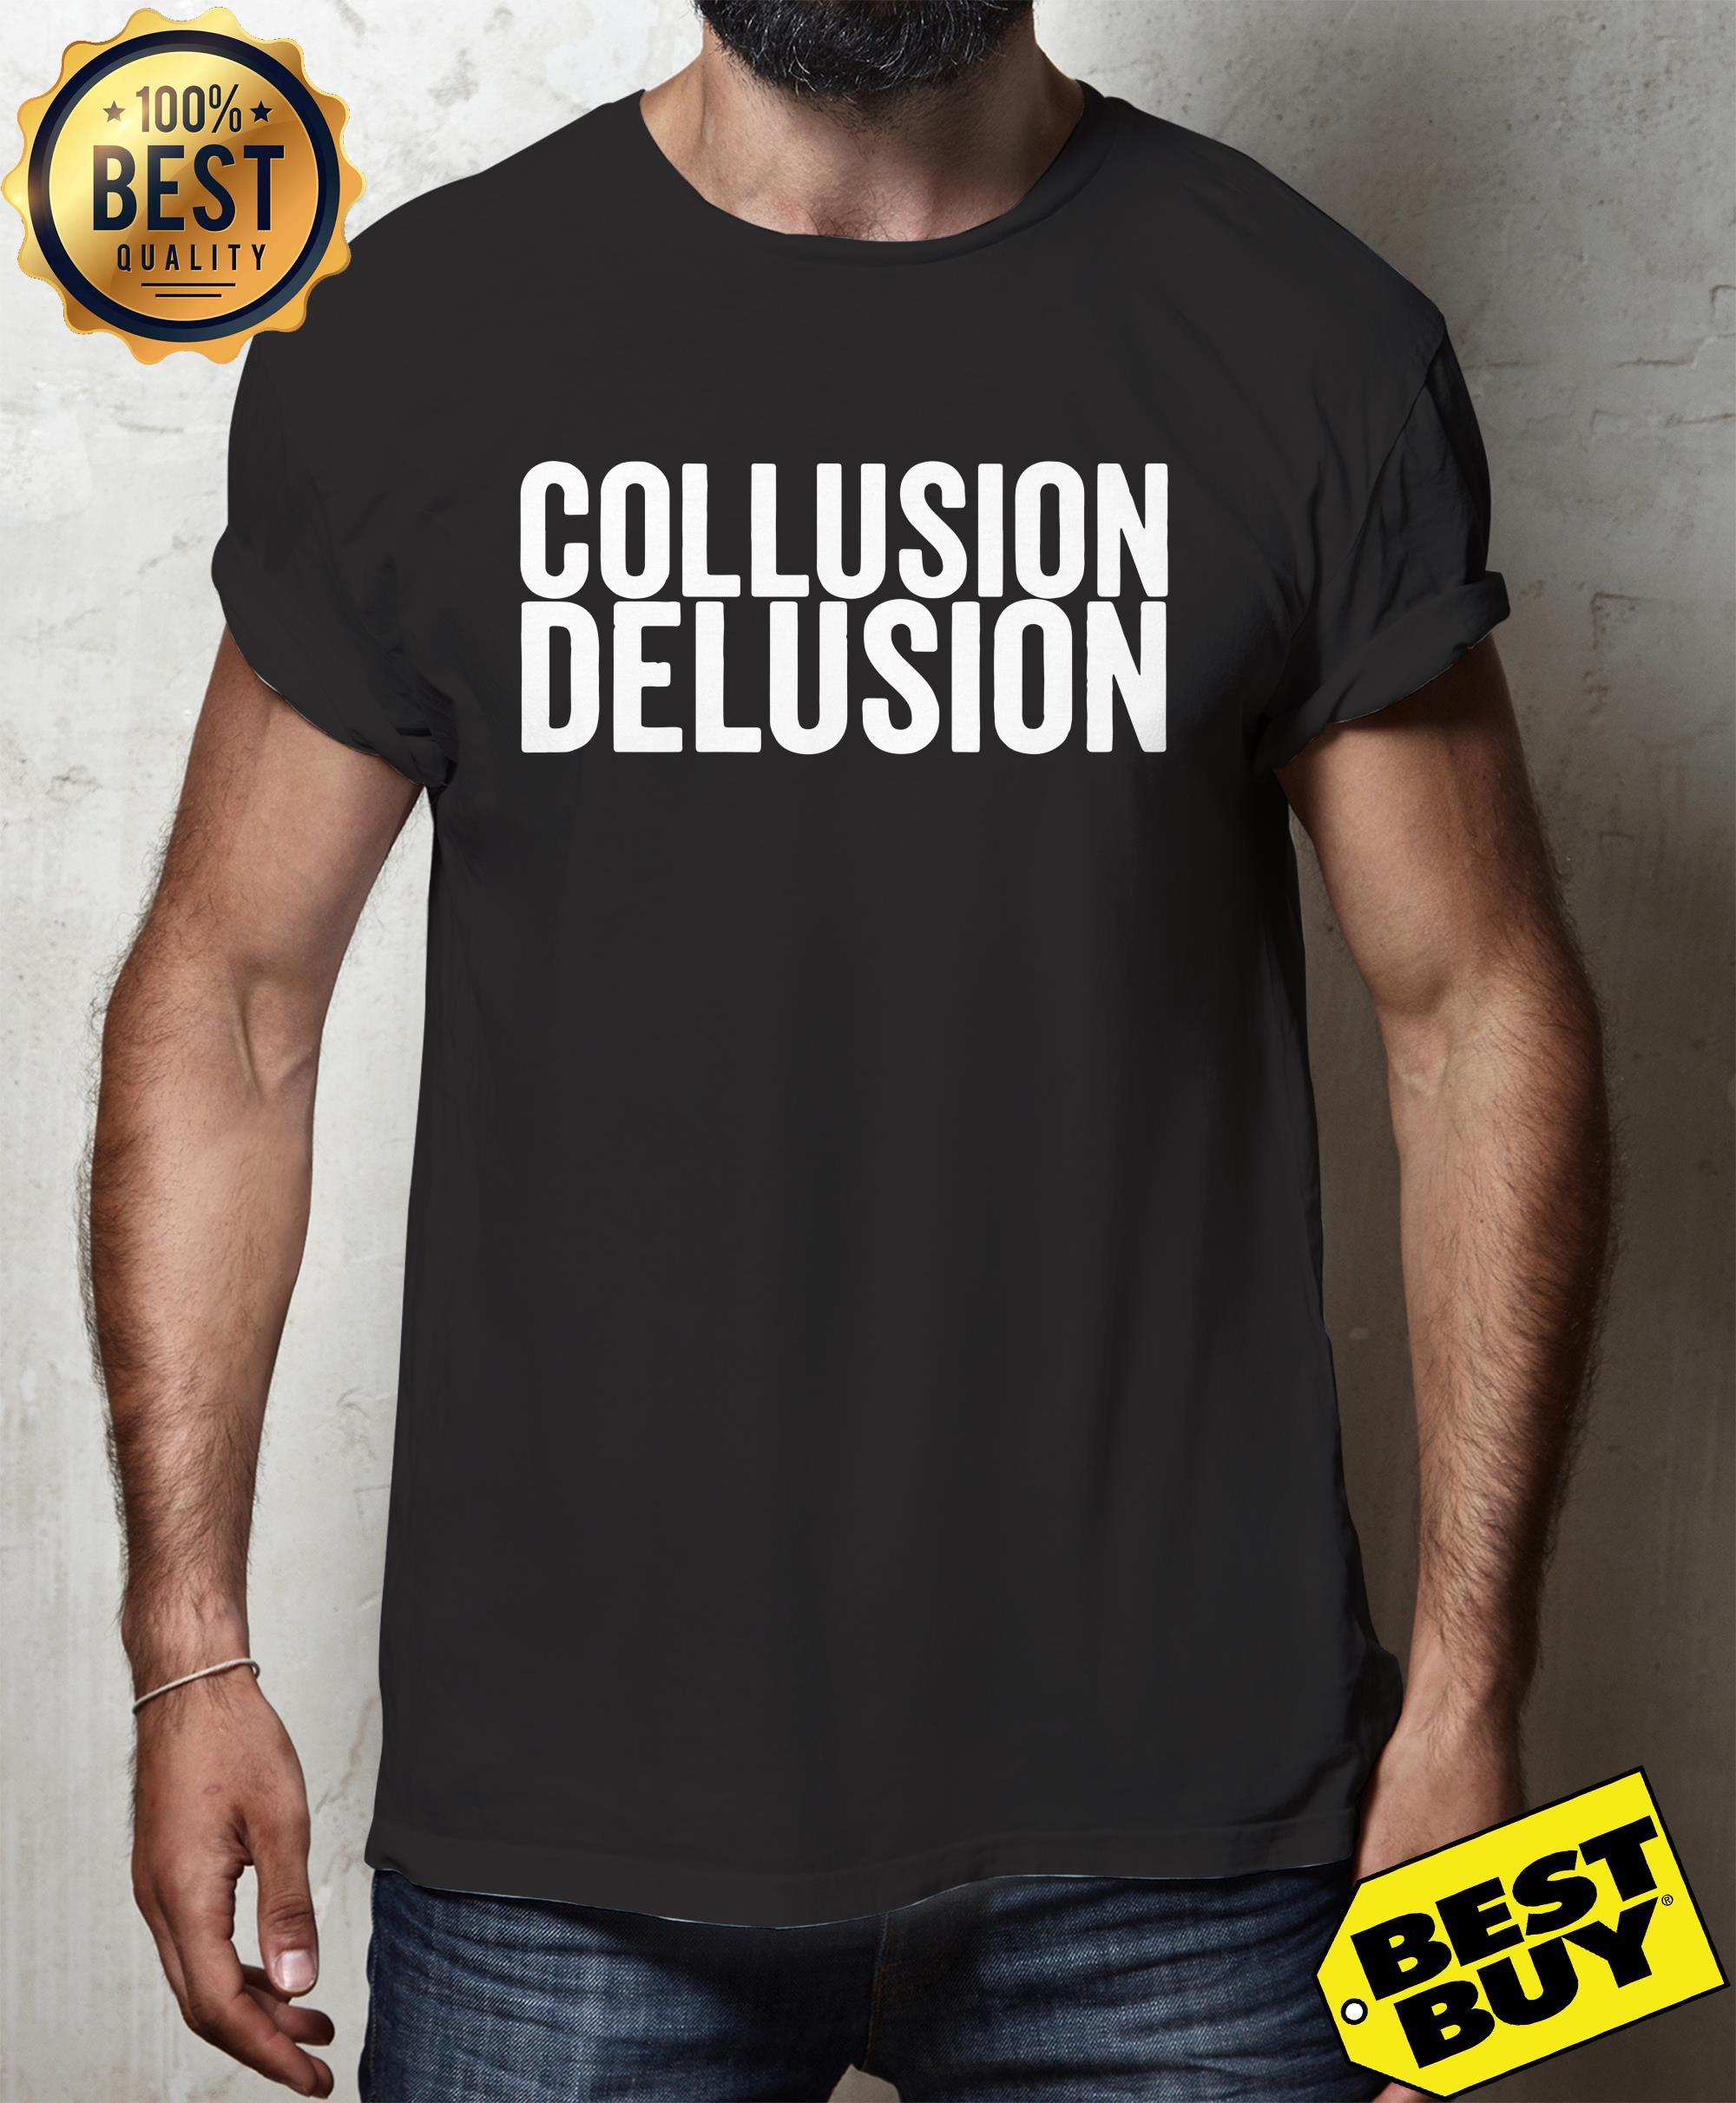 Collusion delusion hoodie